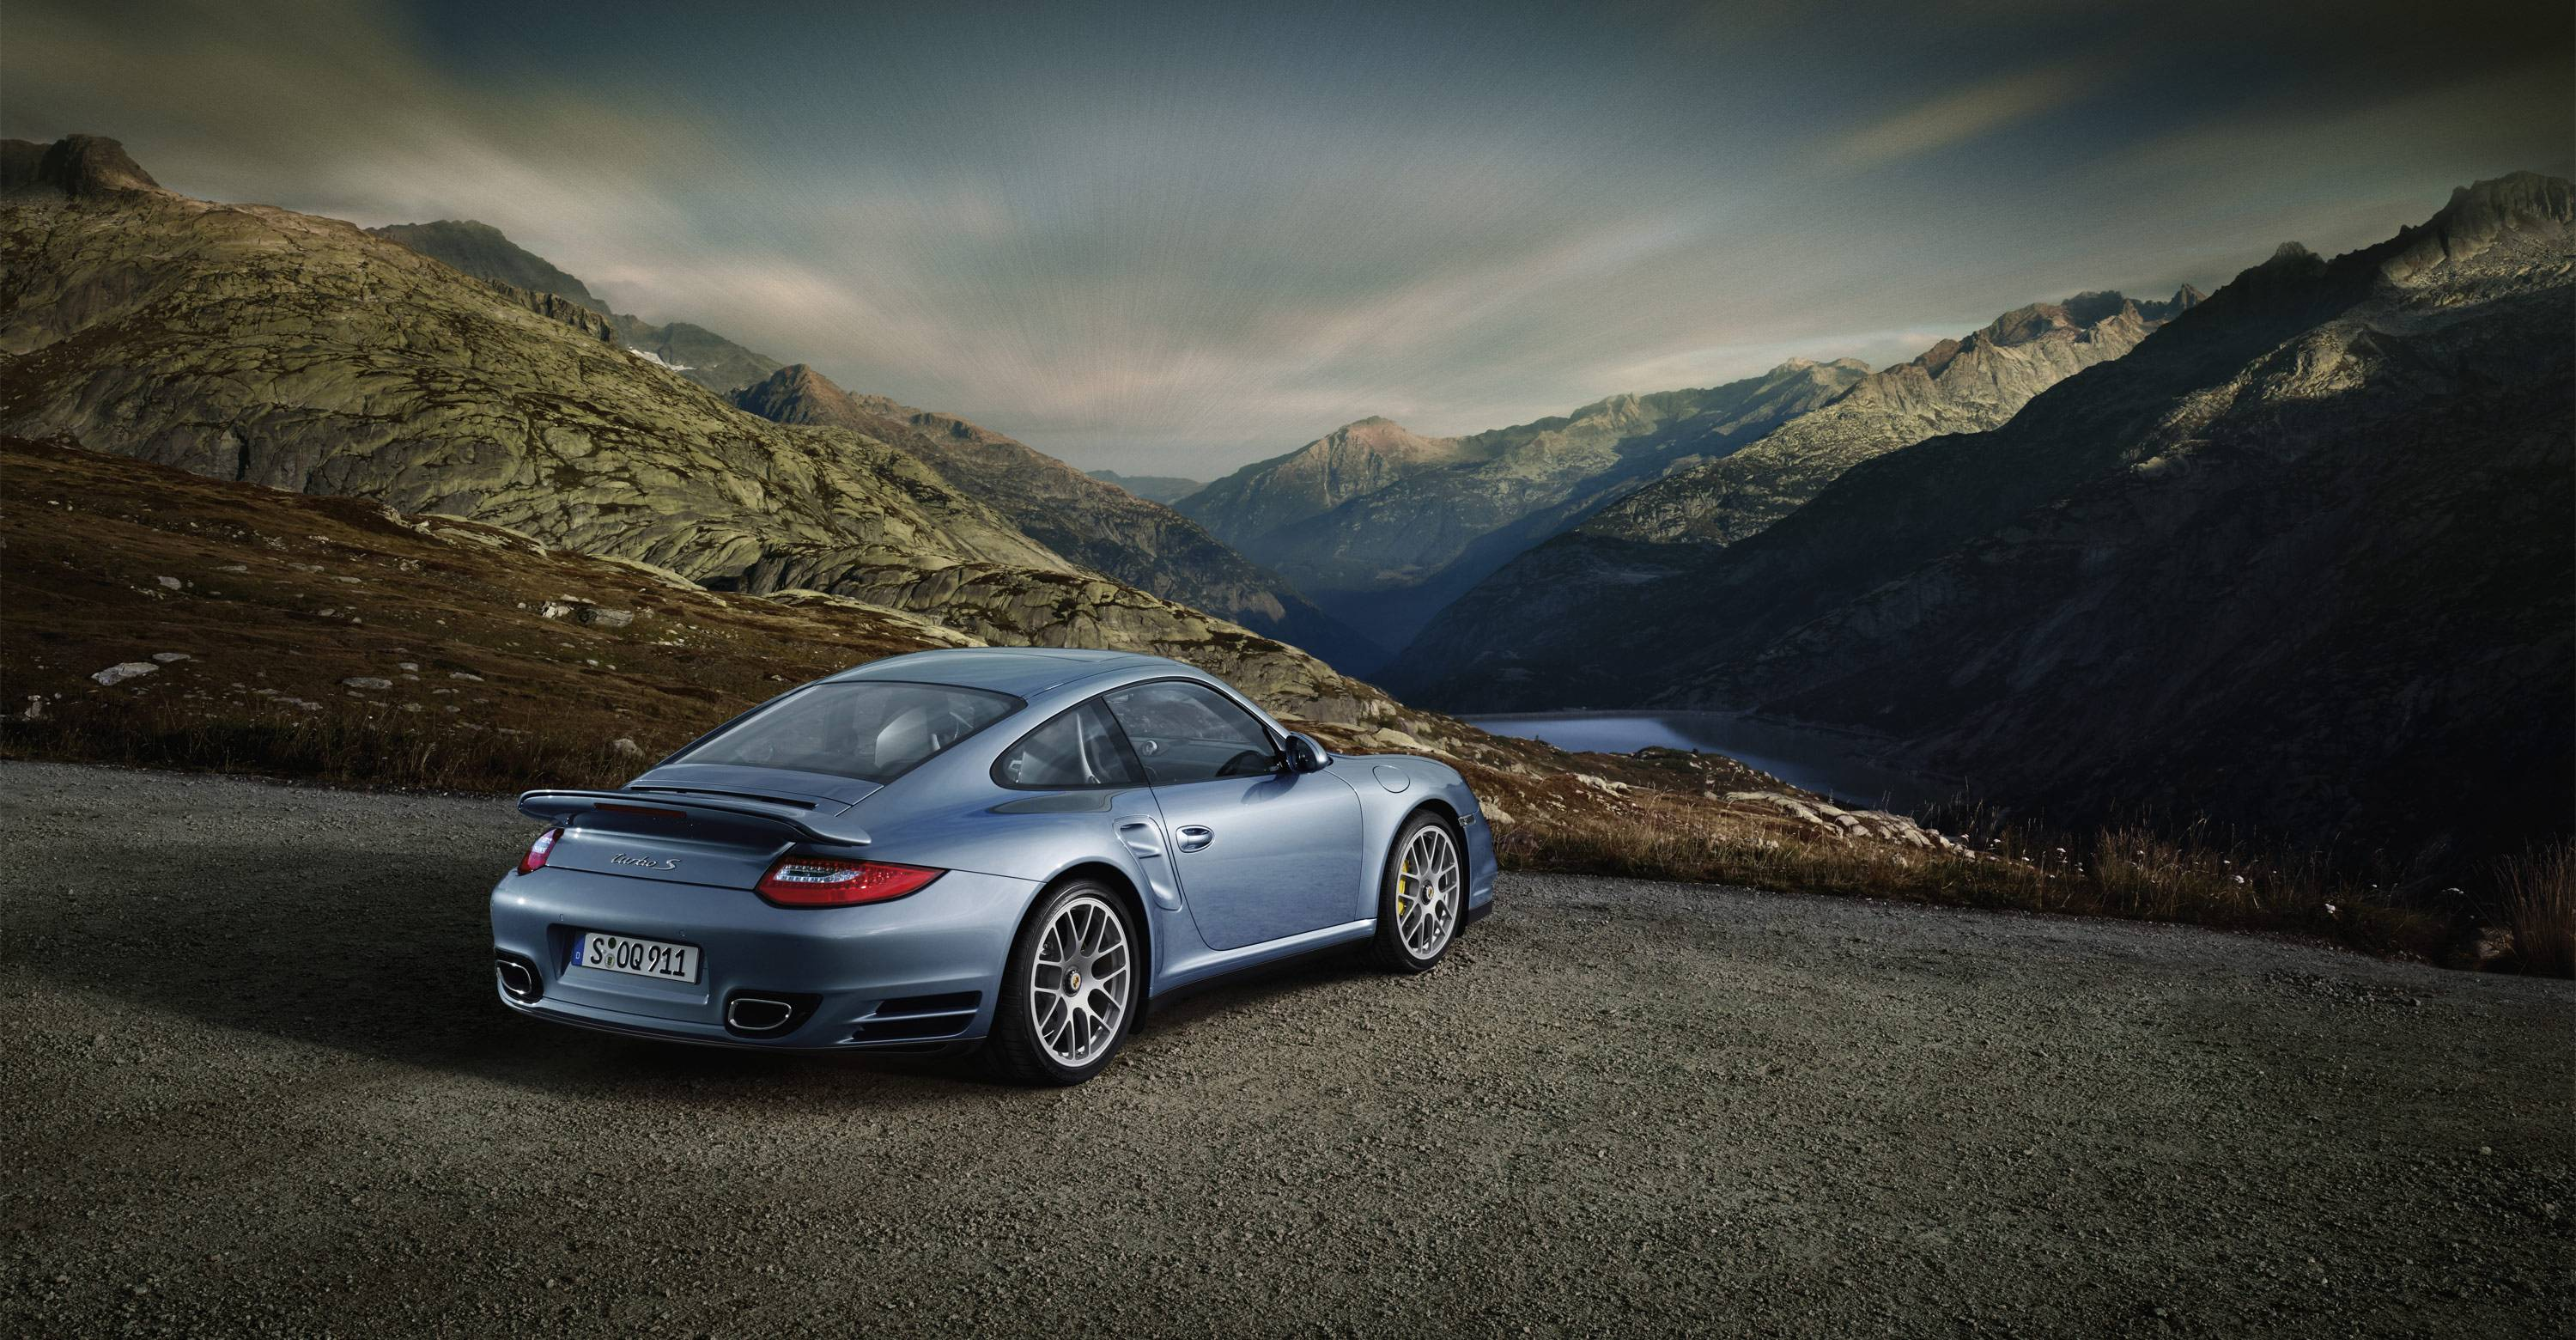 porsche 911 turbo wallpaper widescreen